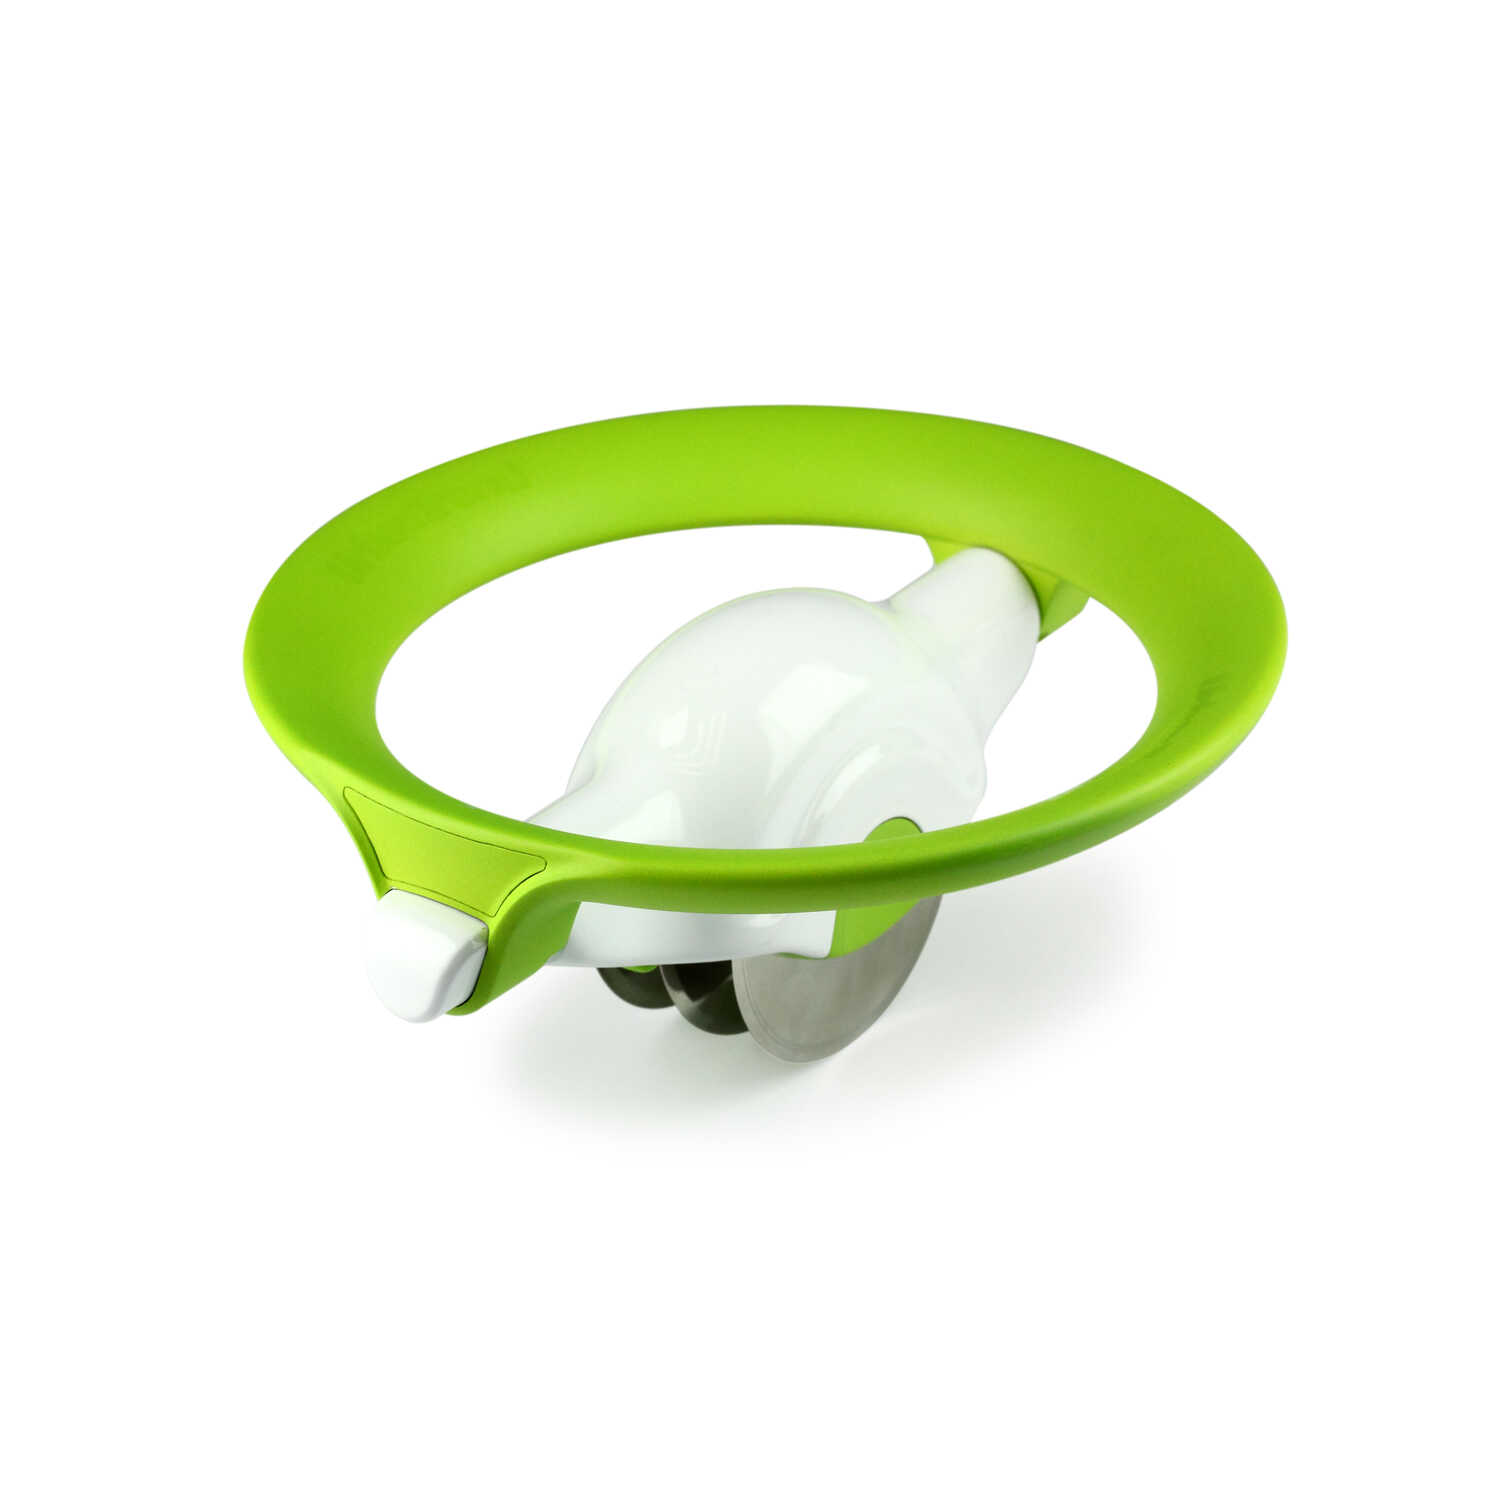 Urban Trend  Orbit  White/ Green  Herb Chopper